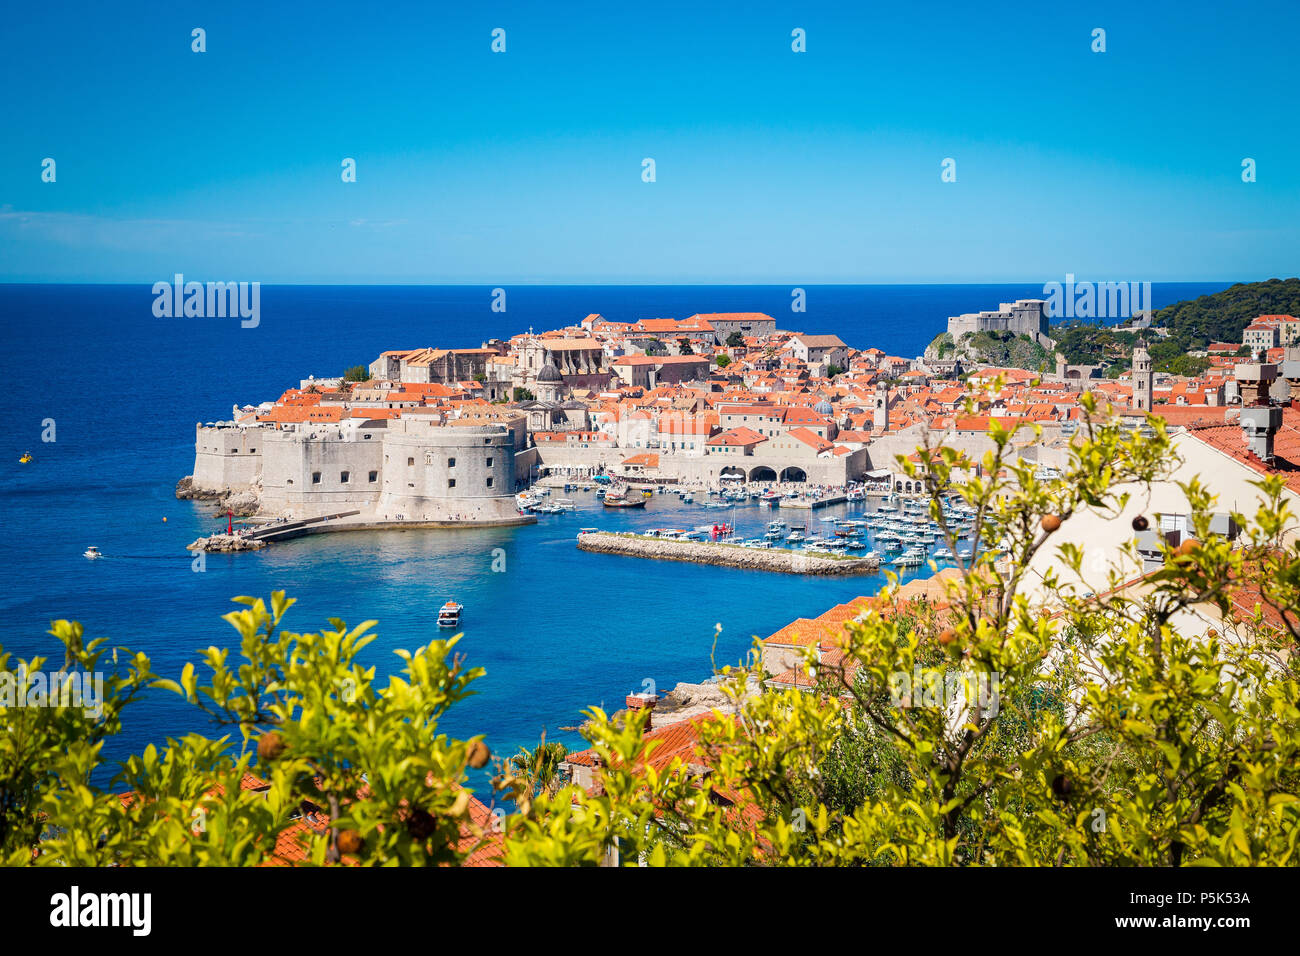 Panoramic aerial view of the historic town of Dubrovnik, one of the most famous tourist destinations in the Mediterranean Sea, from Srt mountain on a  - Stock Image